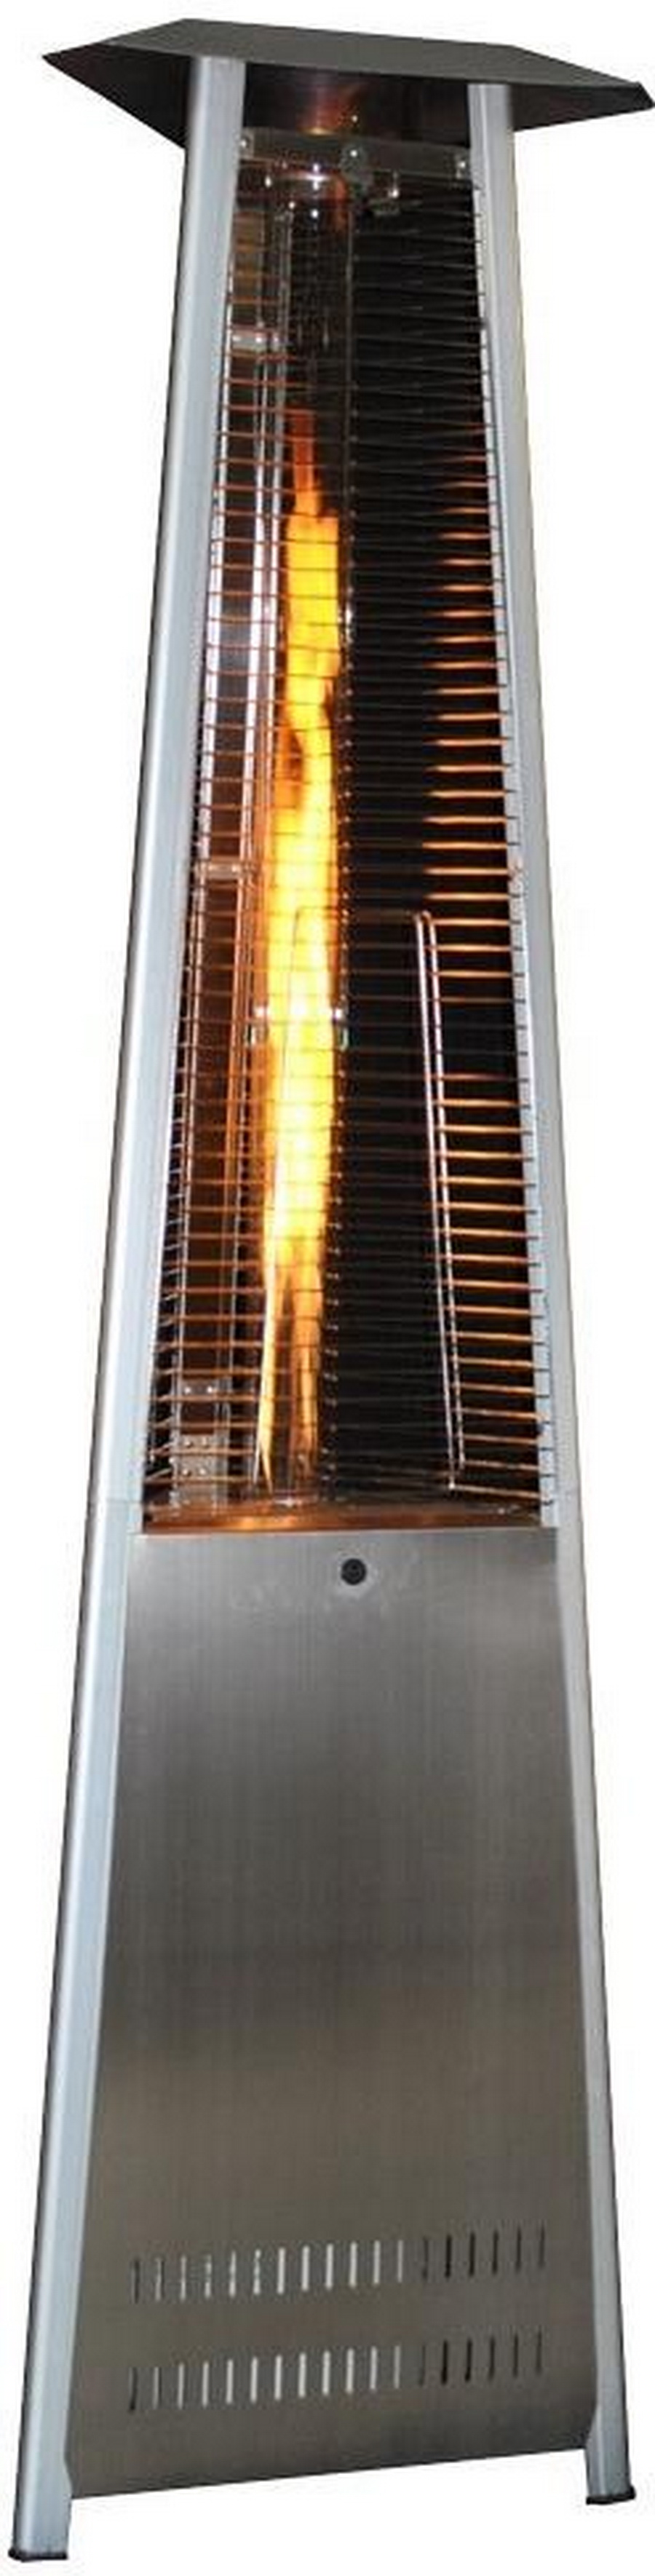 Sunheat Triangle Variable Flame Stainless Steel Patio Heater PHSQSS